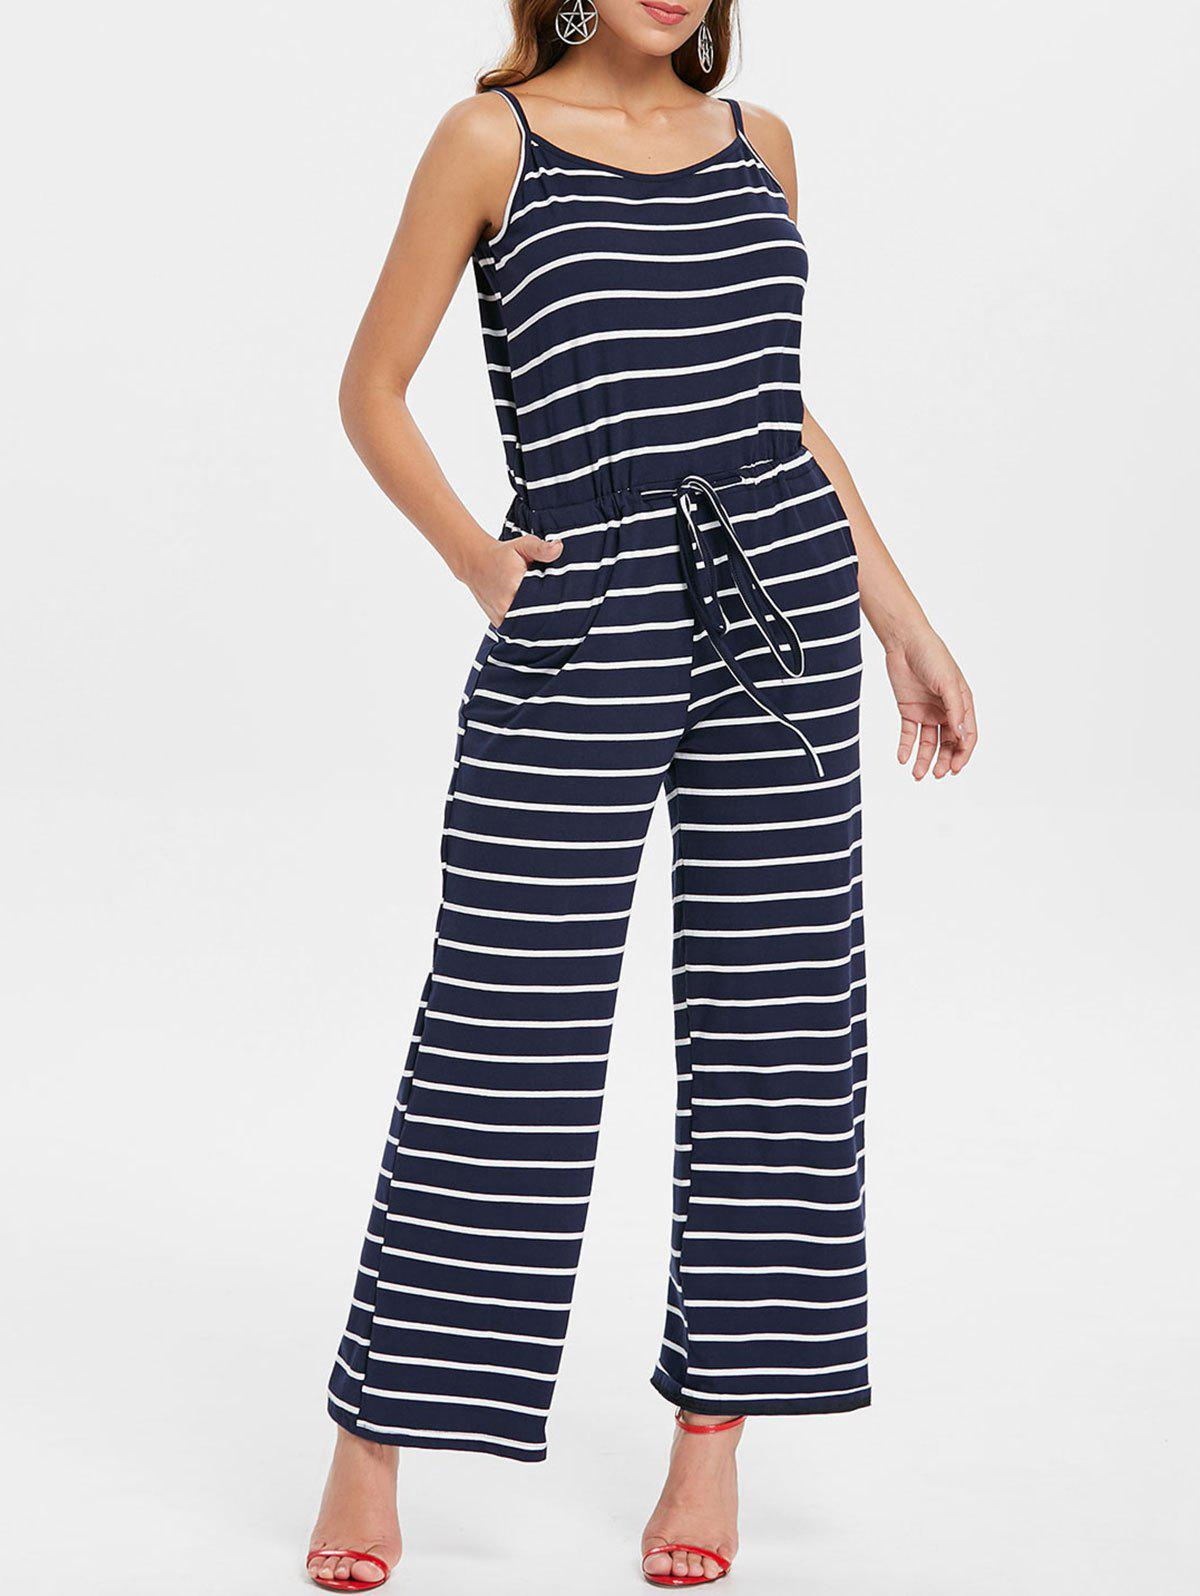 Hot Drawstring Waist Striped Jumpsuit